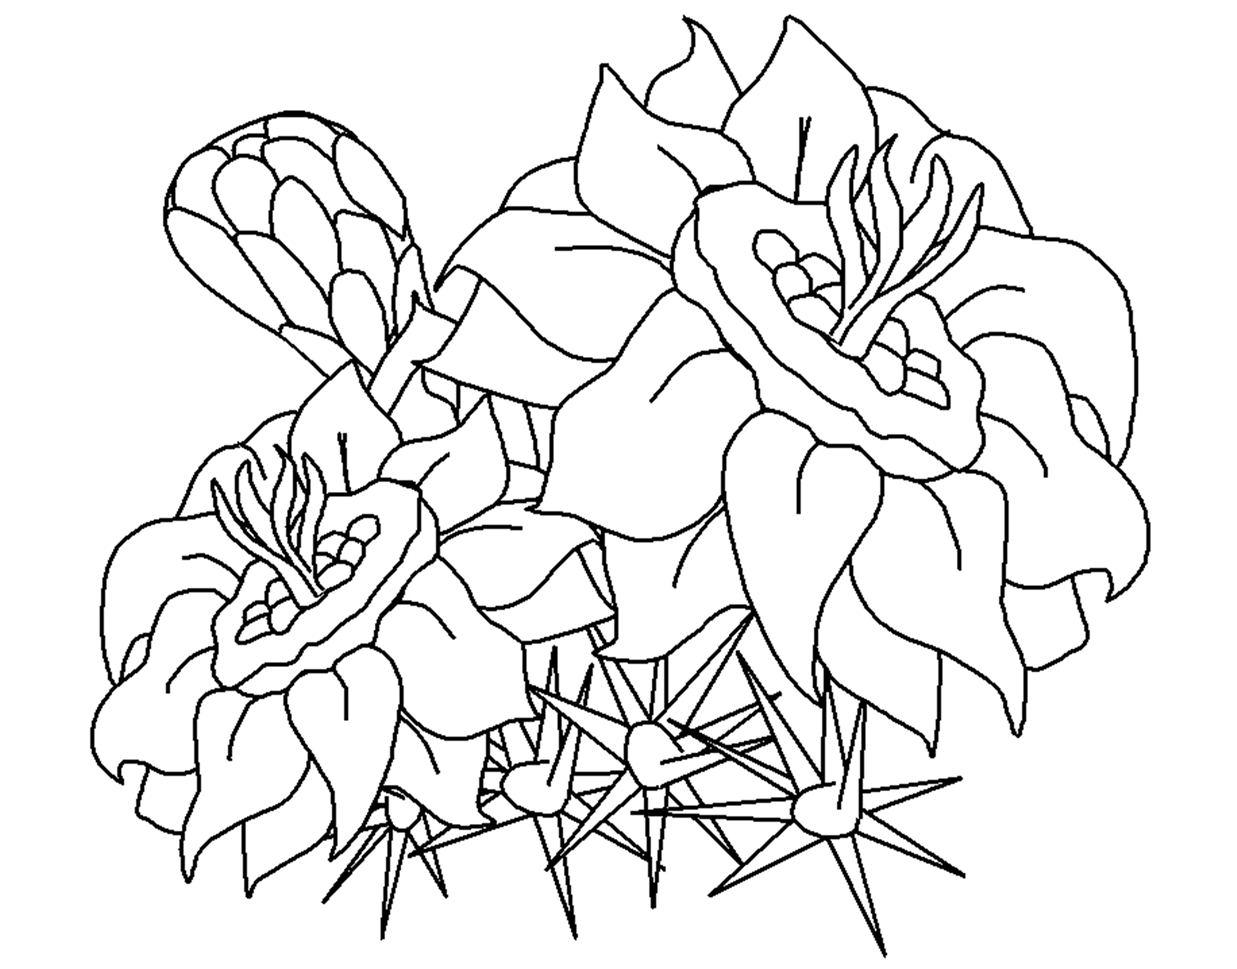 coloring pages flowers printable free printable flower coloring pages for kids flowers coloring pages printable